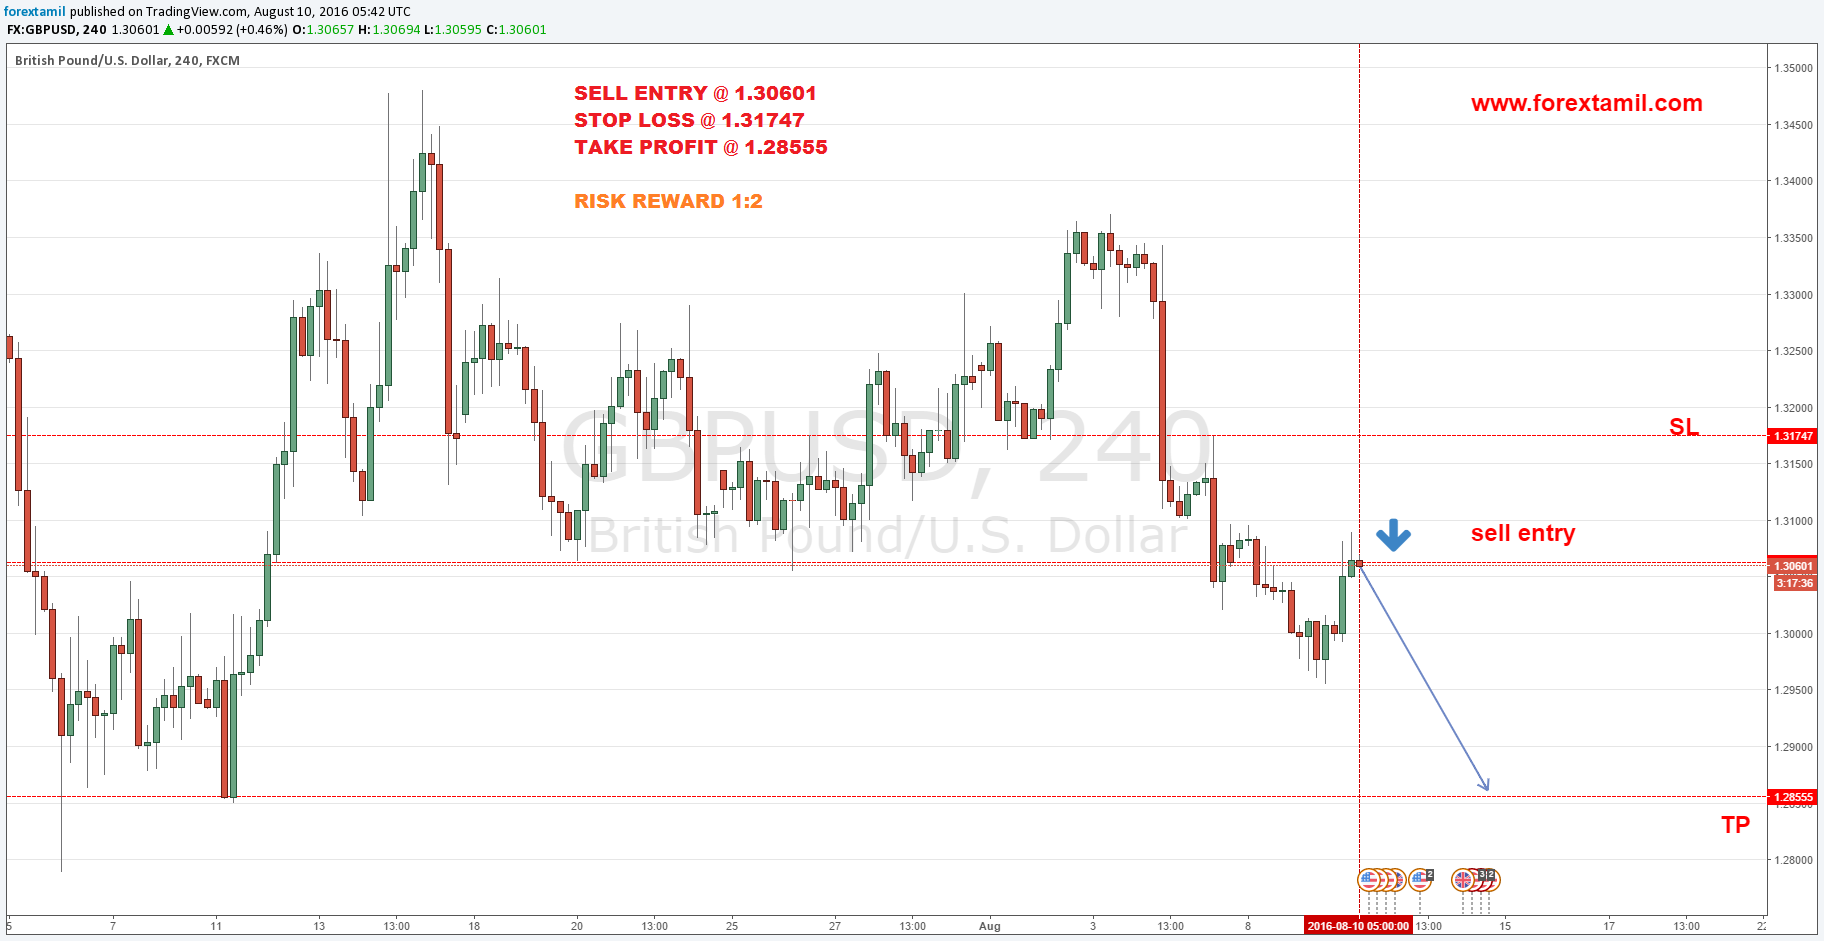 Q-FOREX LIVE CHALLENGING SIGNALS GBP/USD SELL  ENTRY @ 1.30601